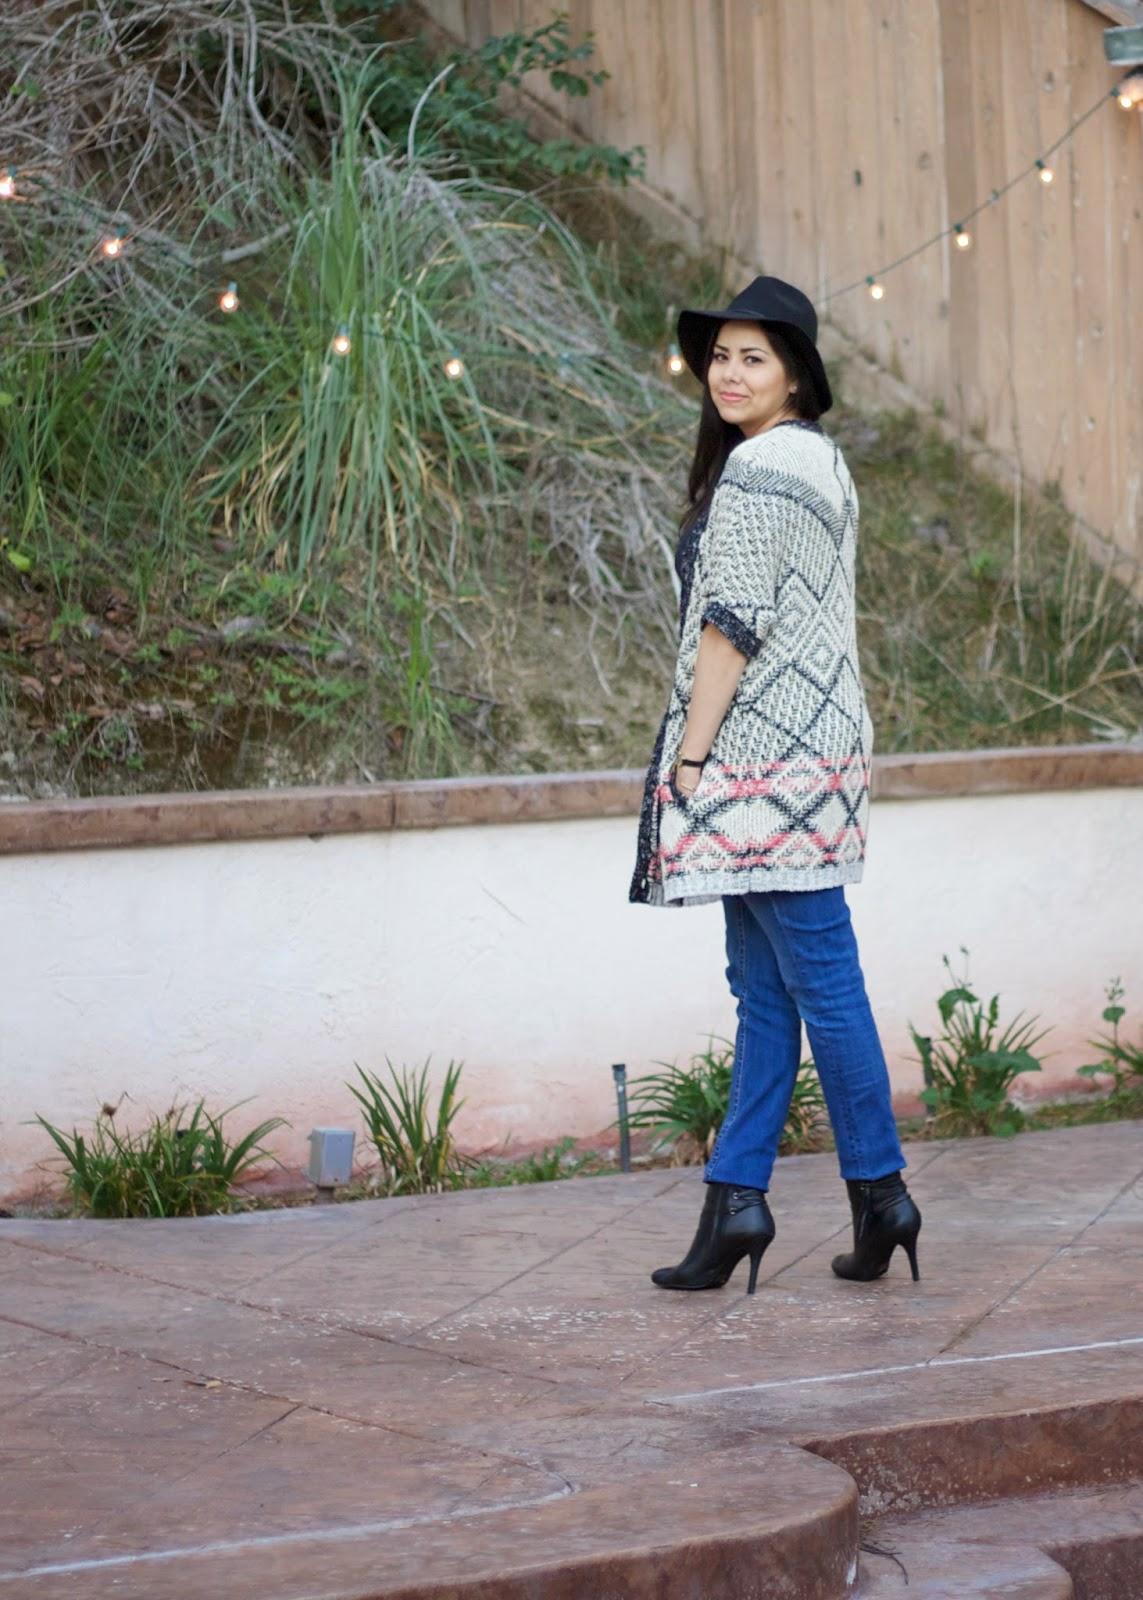 New Bohemian Outfit, boho outfit 2015, california blogger, best of san diego, best of san diego bloggers, transitional outfit, black knits, red stitched sweater, #CAbiscoop